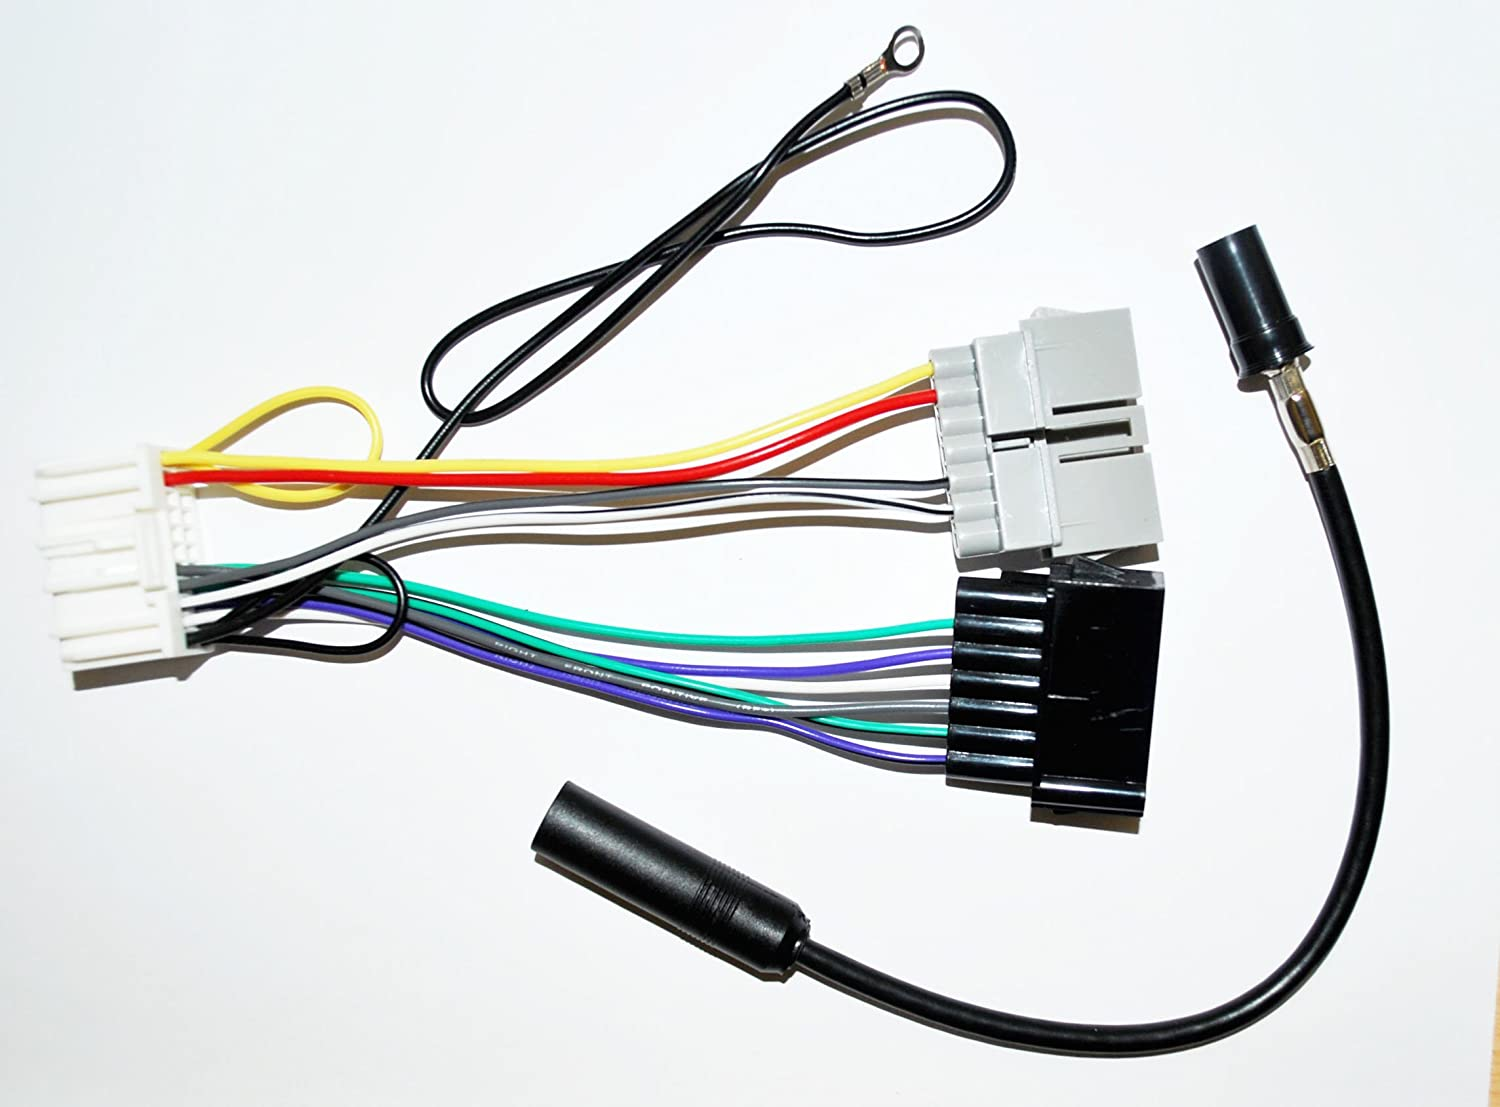 [SCHEMATICS_49CH]  Amazon.com: Custom Install Parts Radio Wire Harness Adapter Old to New  7-22pin+CD Changer Compatible with Chrysler Dodge Jeep: Car Electronics | 1993 Jeep Radio Wiring |  | Amazon.com